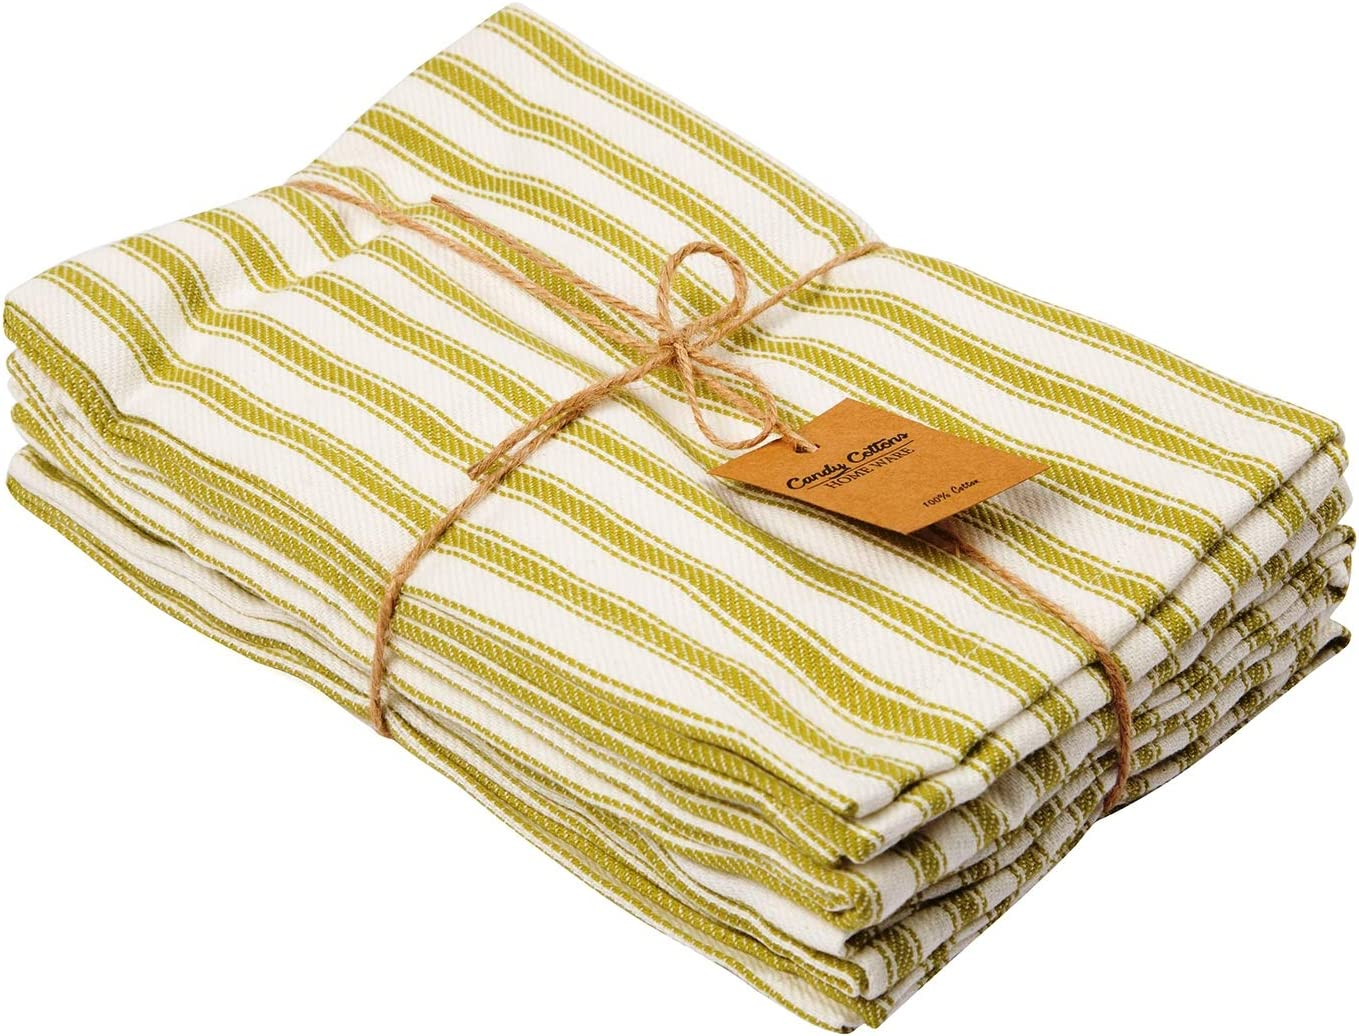 Amazon Com Candy Cottons 100 Pure Cotton Dinner Napkins Olive White French Stripes Pack Of 6 18 X18 Dinner Table Napkins Soft Comfortable Reusable Napkins For Home Weddings Cocktail Parties